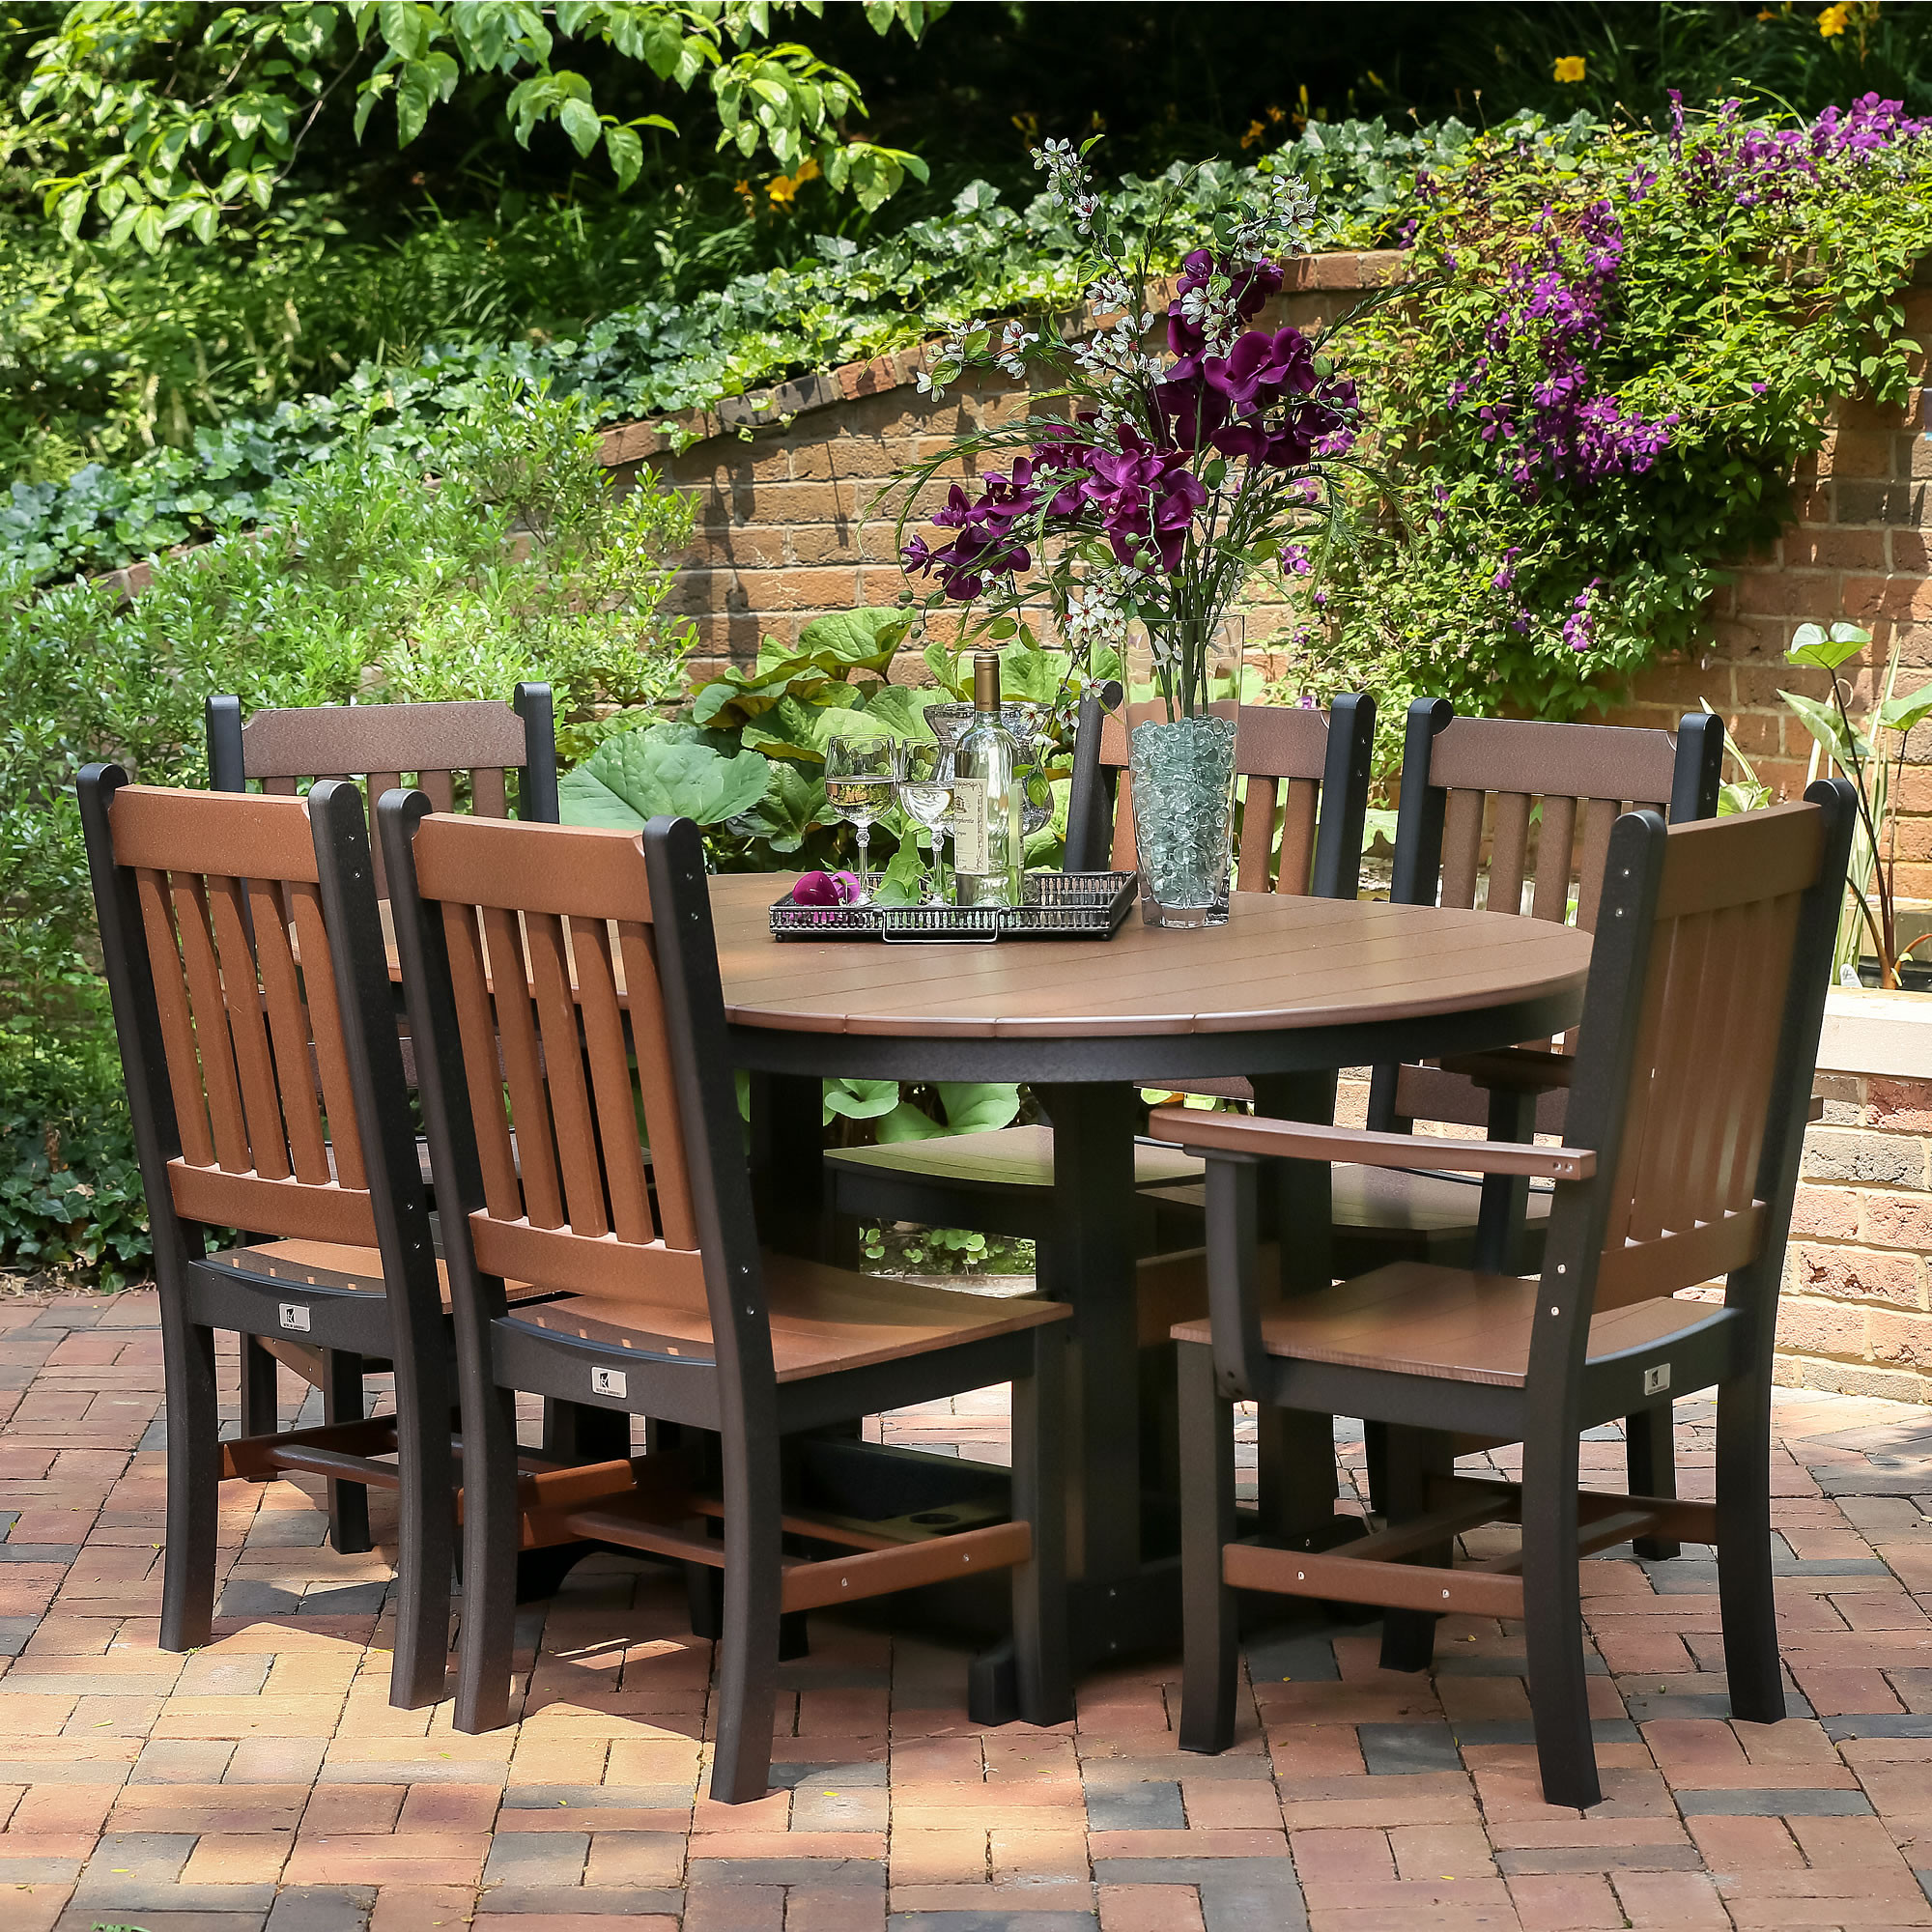 Chairs Berlin berlin gardens oblong mission dining set garden mission chairs